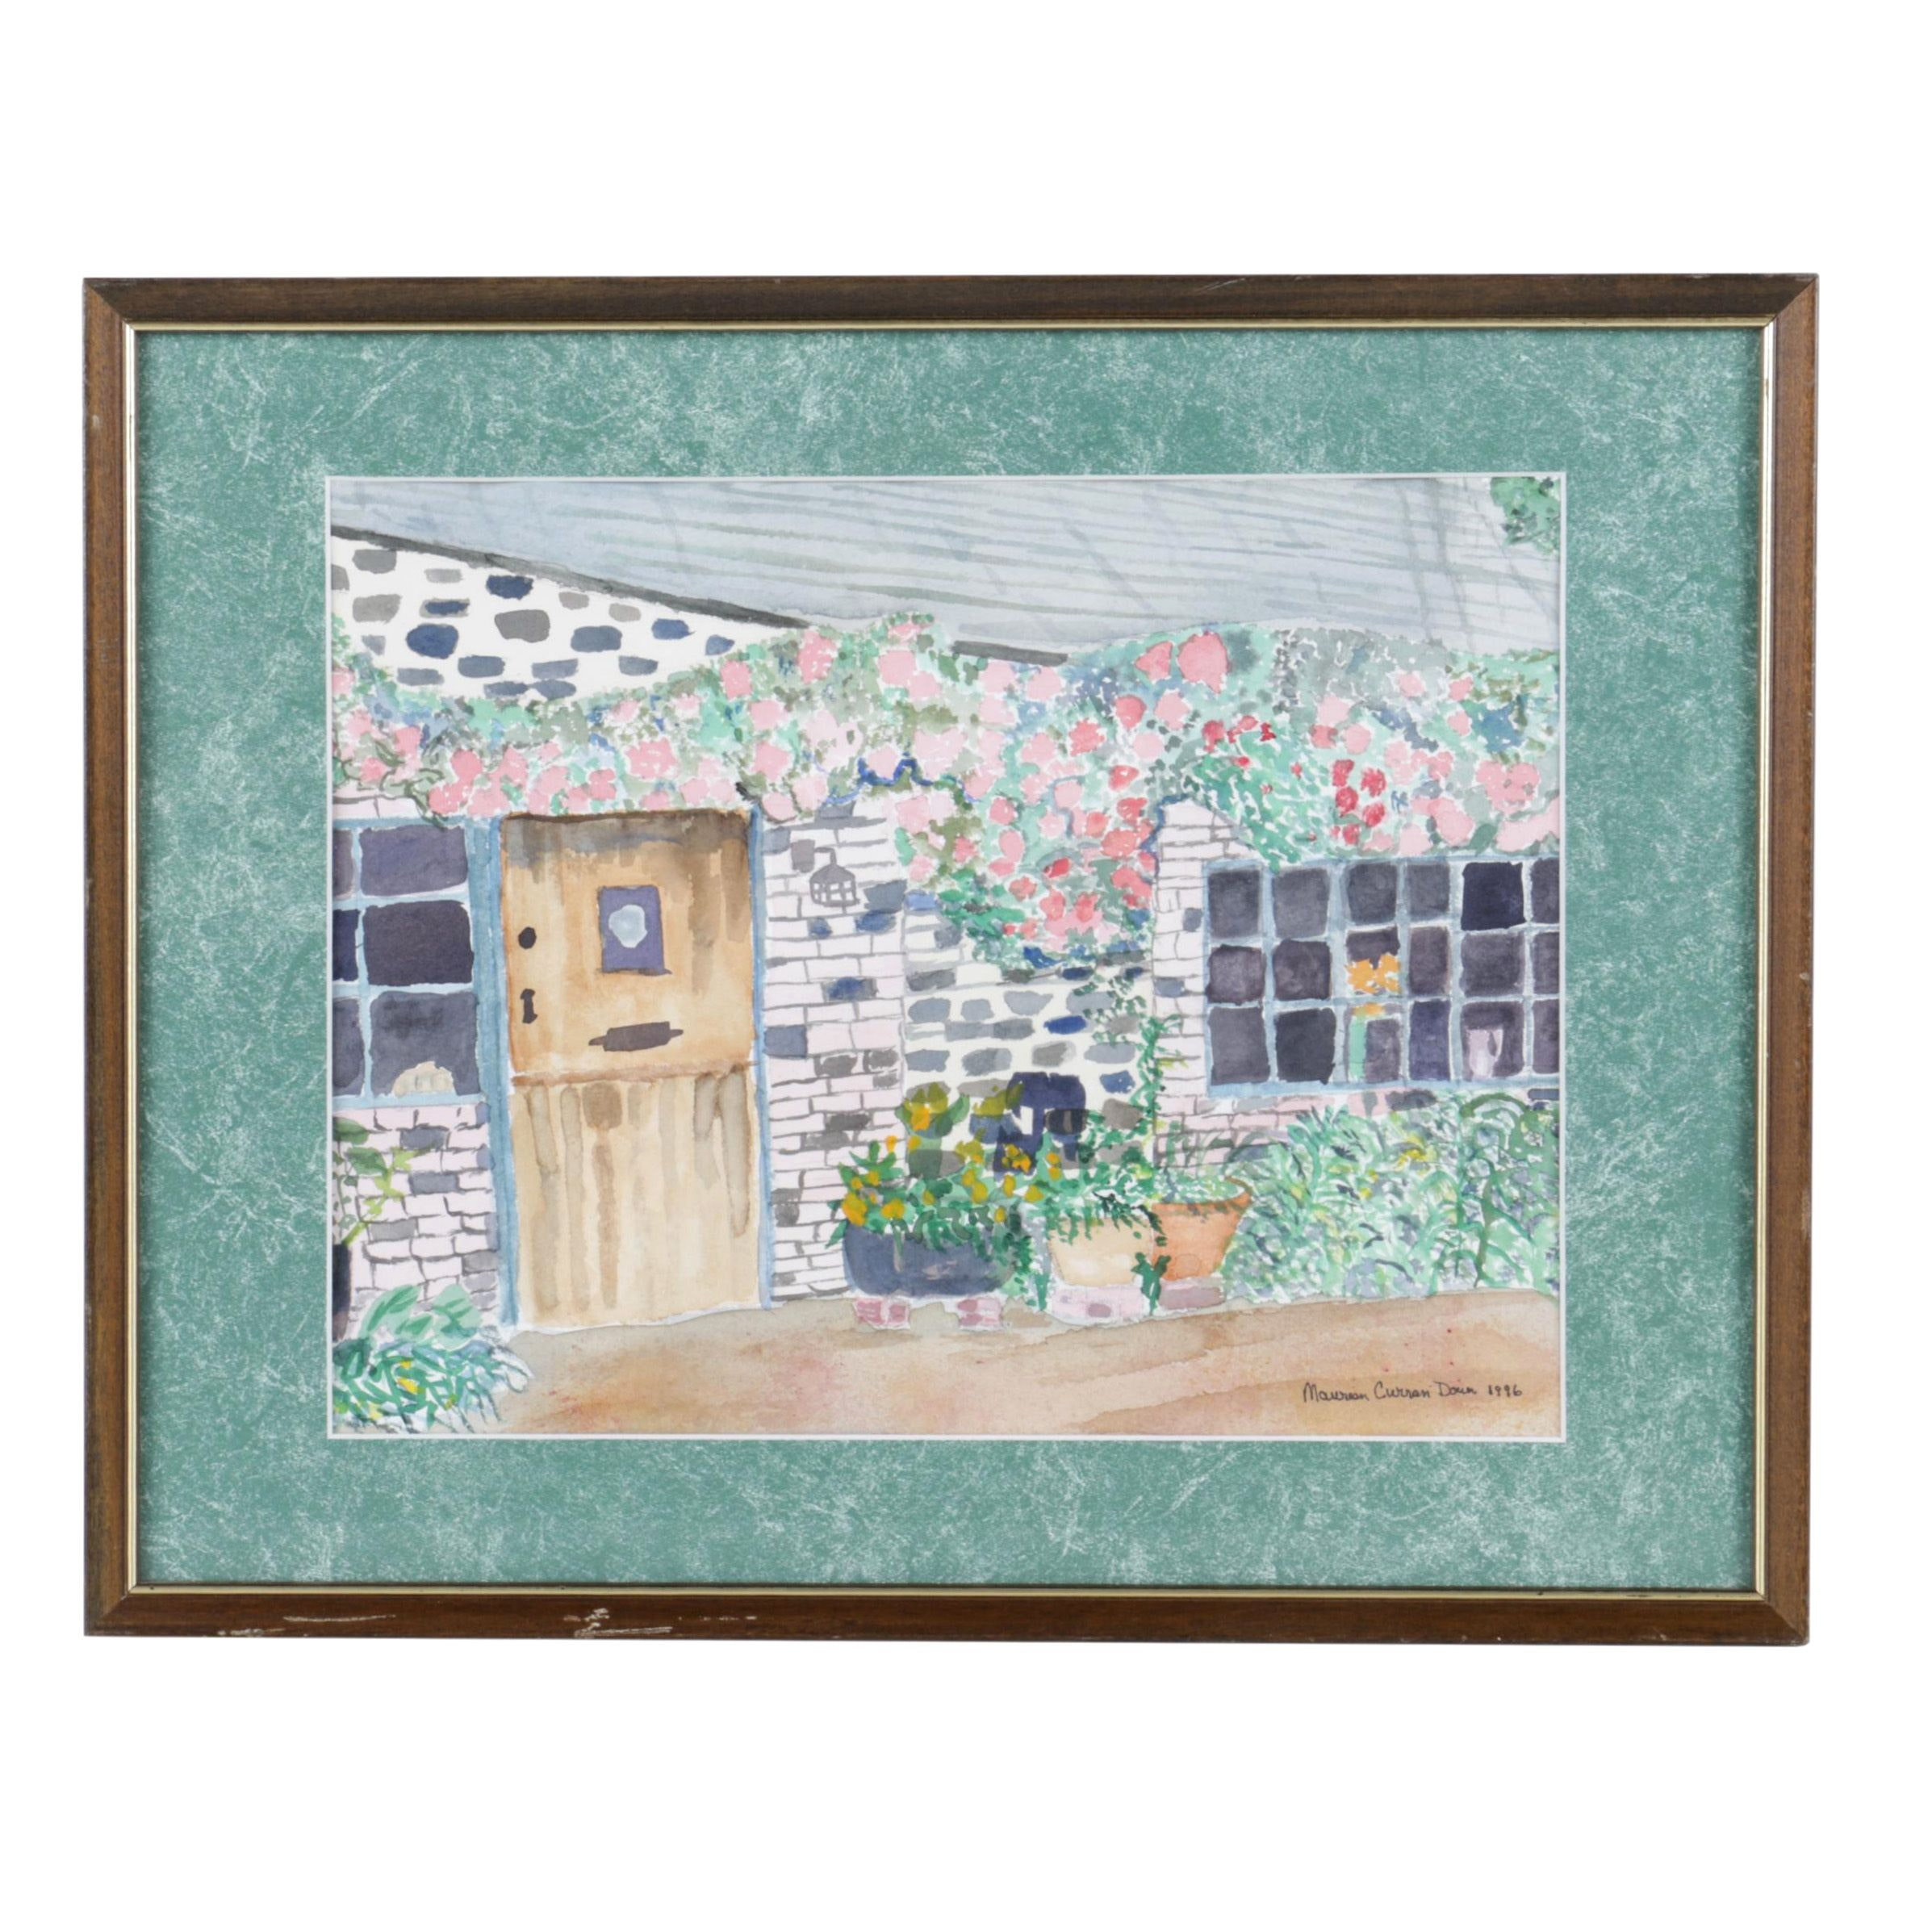 Maureen Curran Down Watercolor Painting of a Cottage